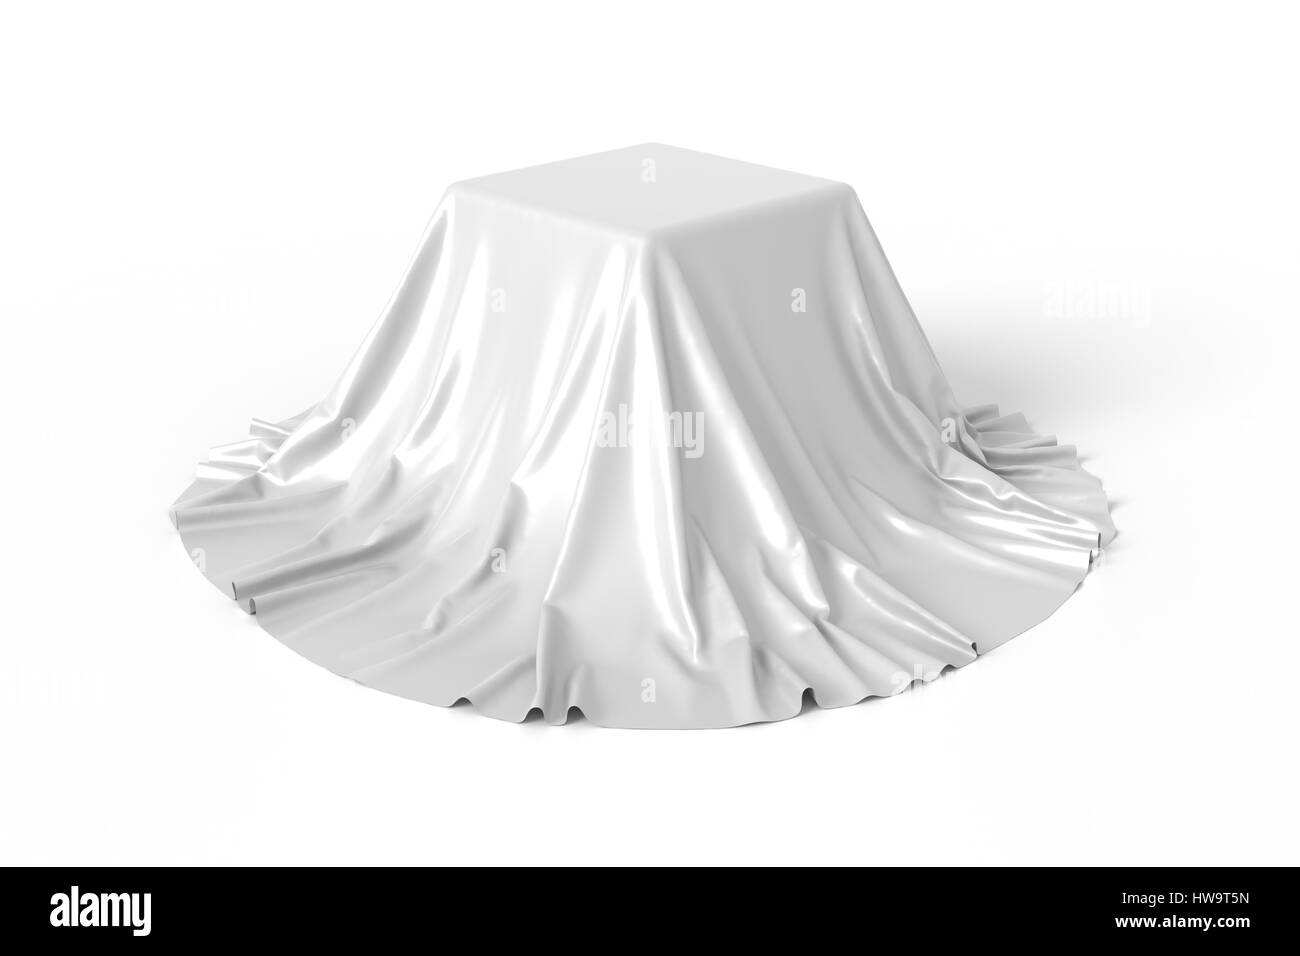 Box covered with white fabric. - Stock Image